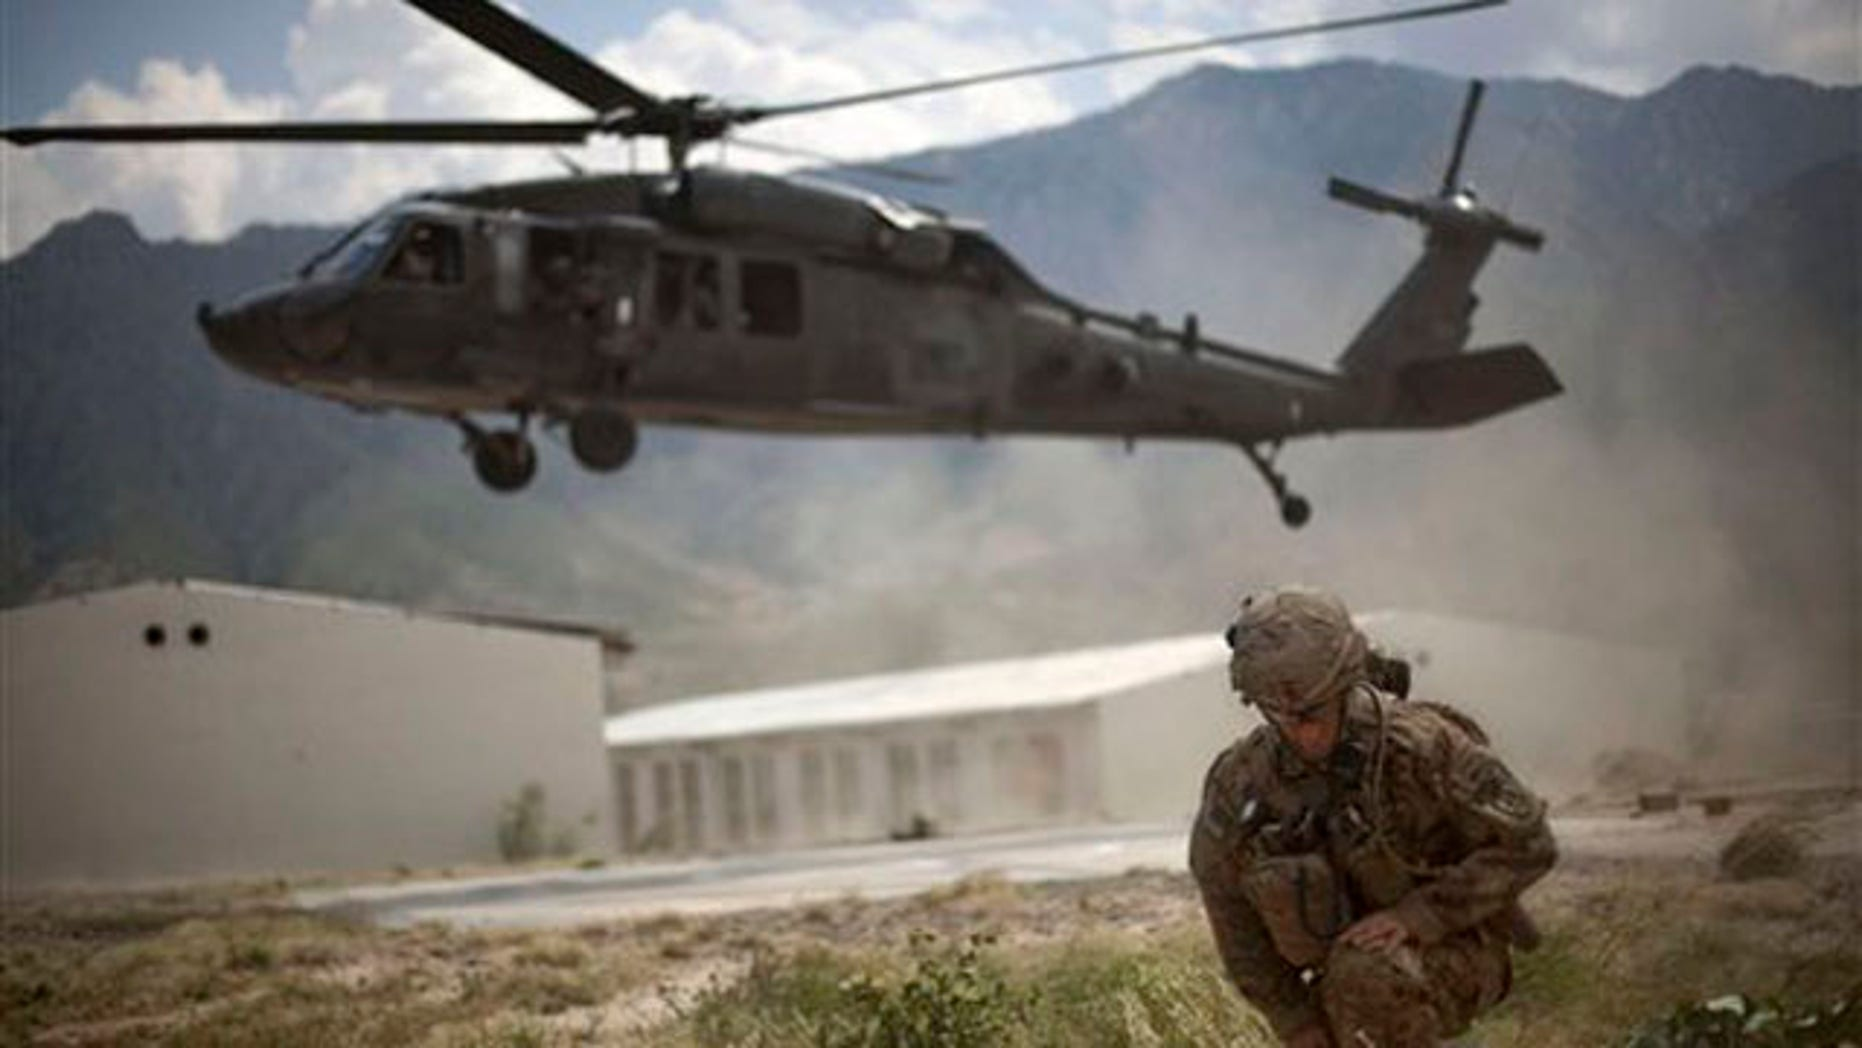 In this Sept. 15, 2011, file photo a commanding officer of the U.S. Army turns from the rotor wash of a Blackhawk helicopter, following a key leader engagement at the Shigal district center in Kunar province, Afghanistan.